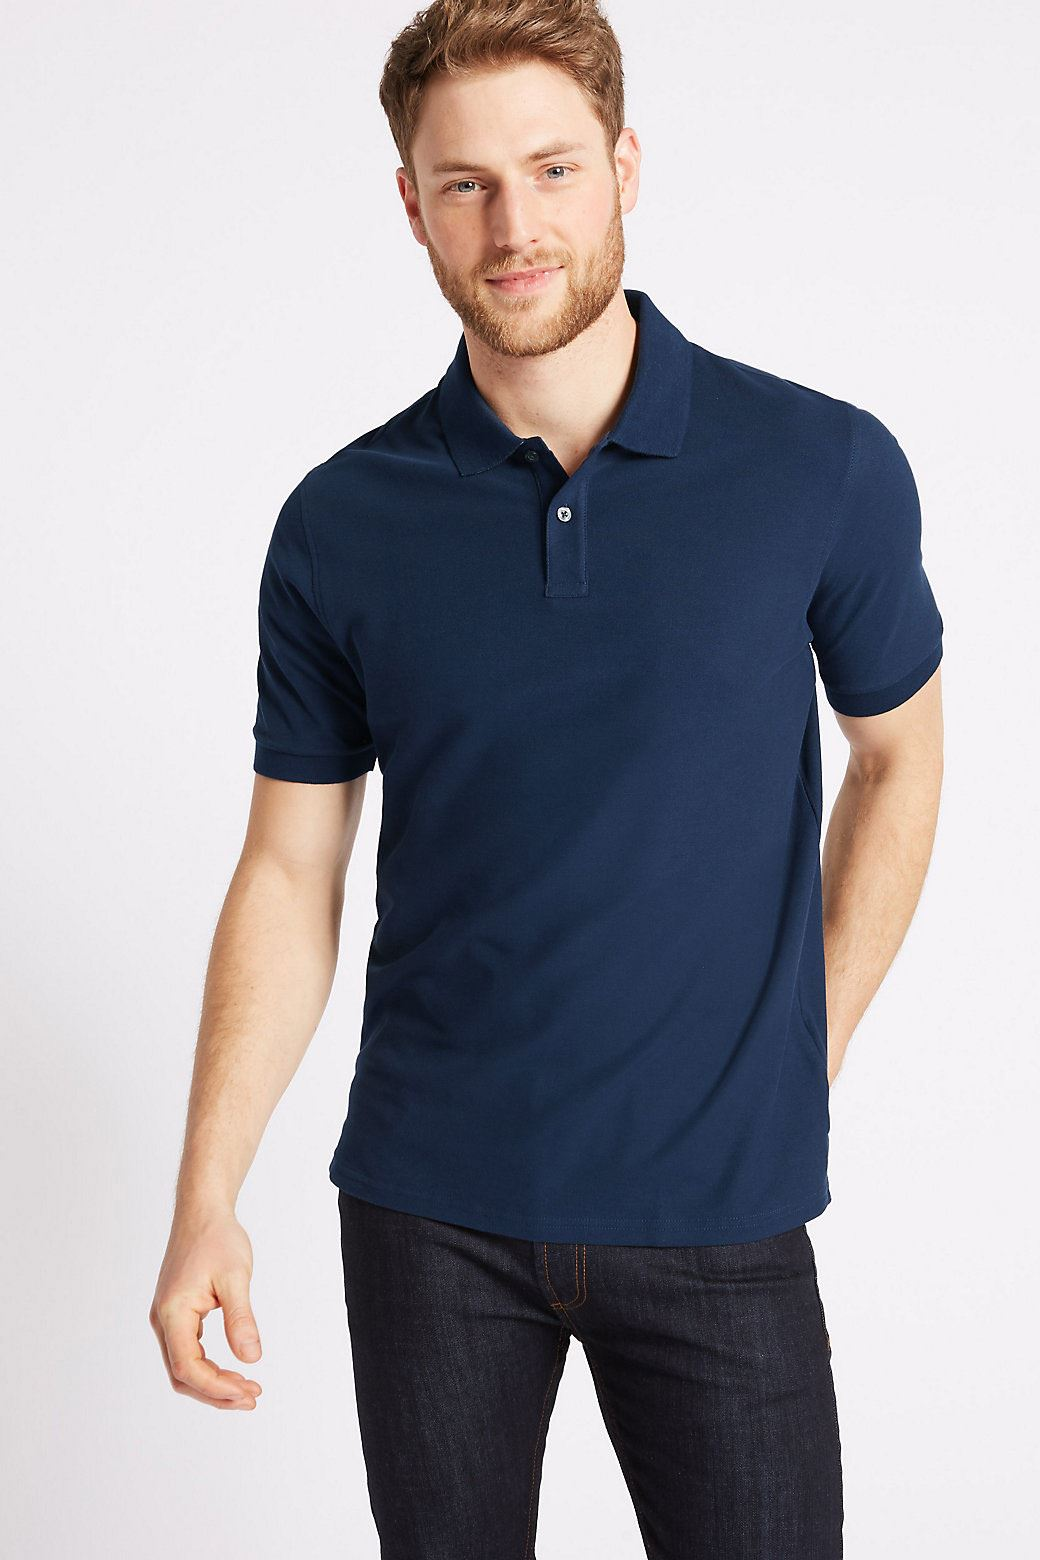 Ex-Marks-and-Spencer-Mens-Cotton-Pique-Polo-Shirt-NEW-Sizes-S-3XL thumbnail 16